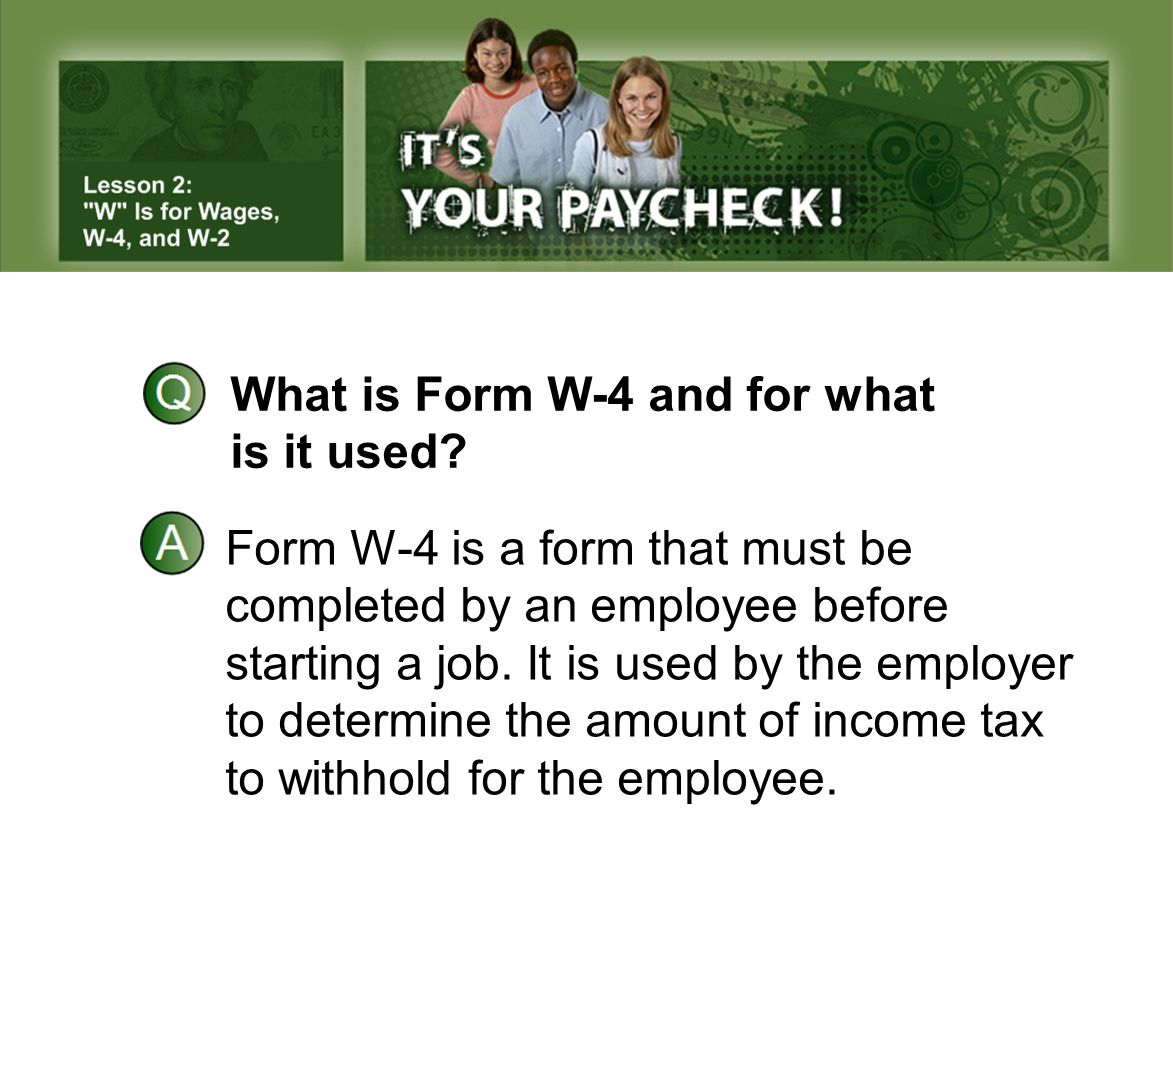 What is Form W-4 and for what is it used